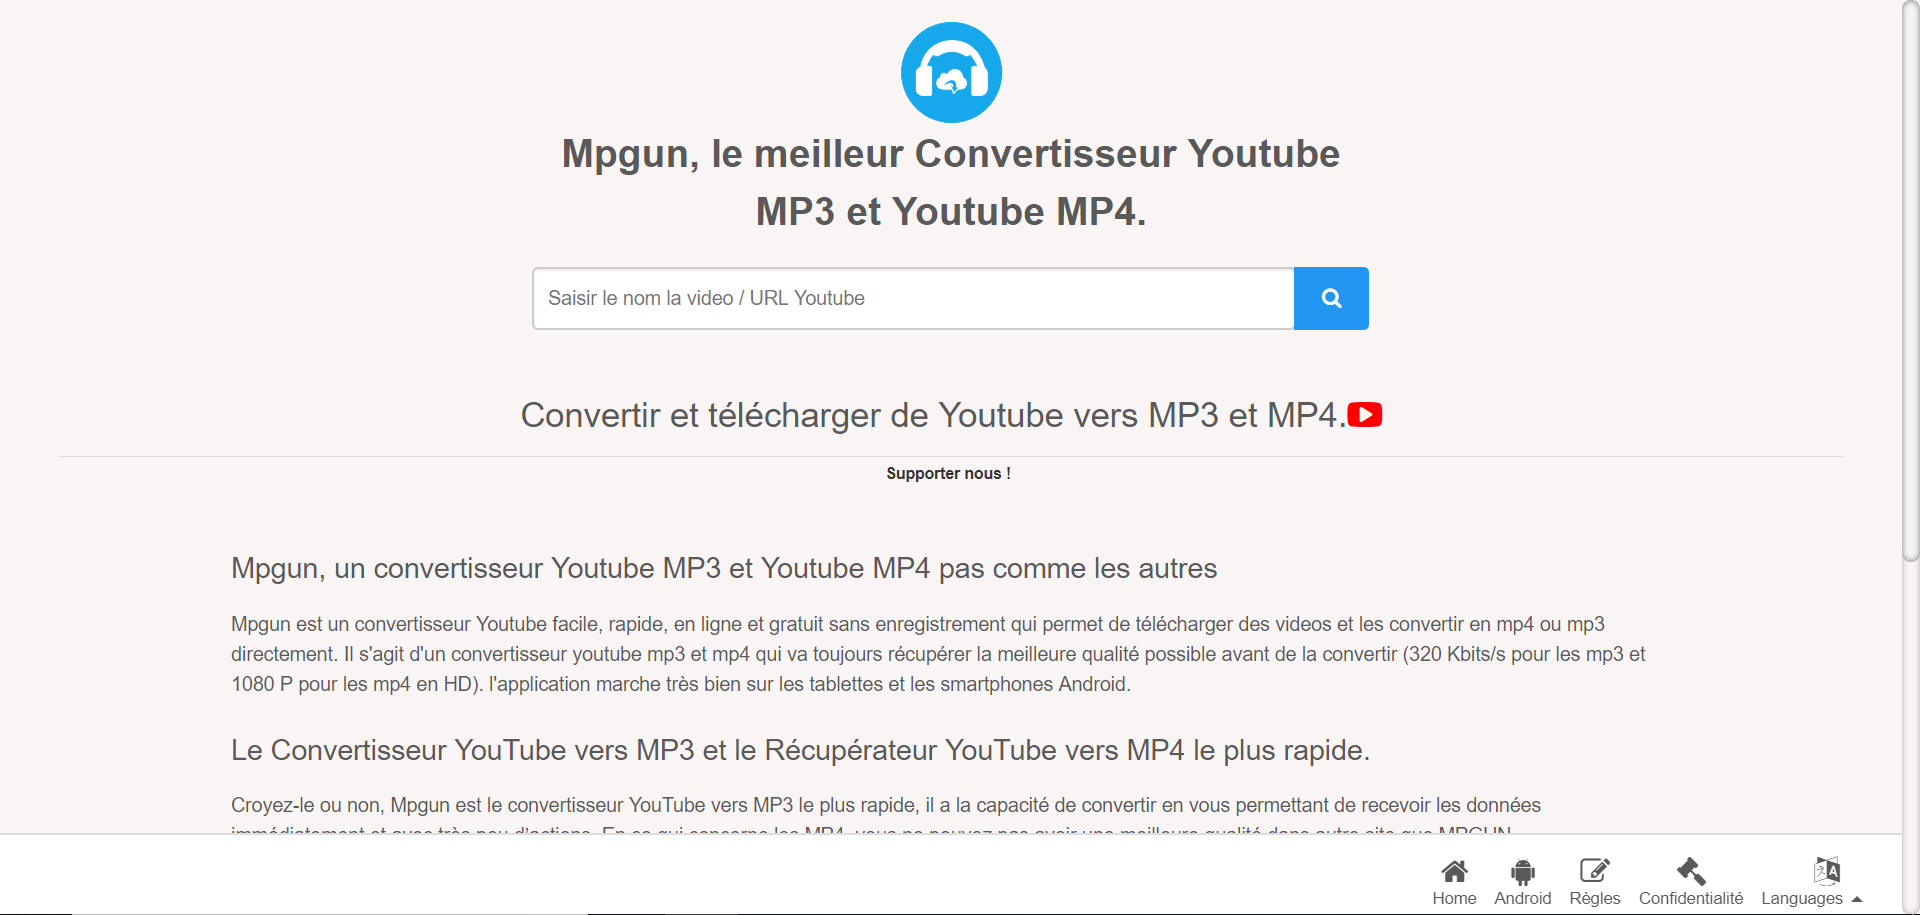 Mpgun-convertisseur-Youtube-MP3-MP4